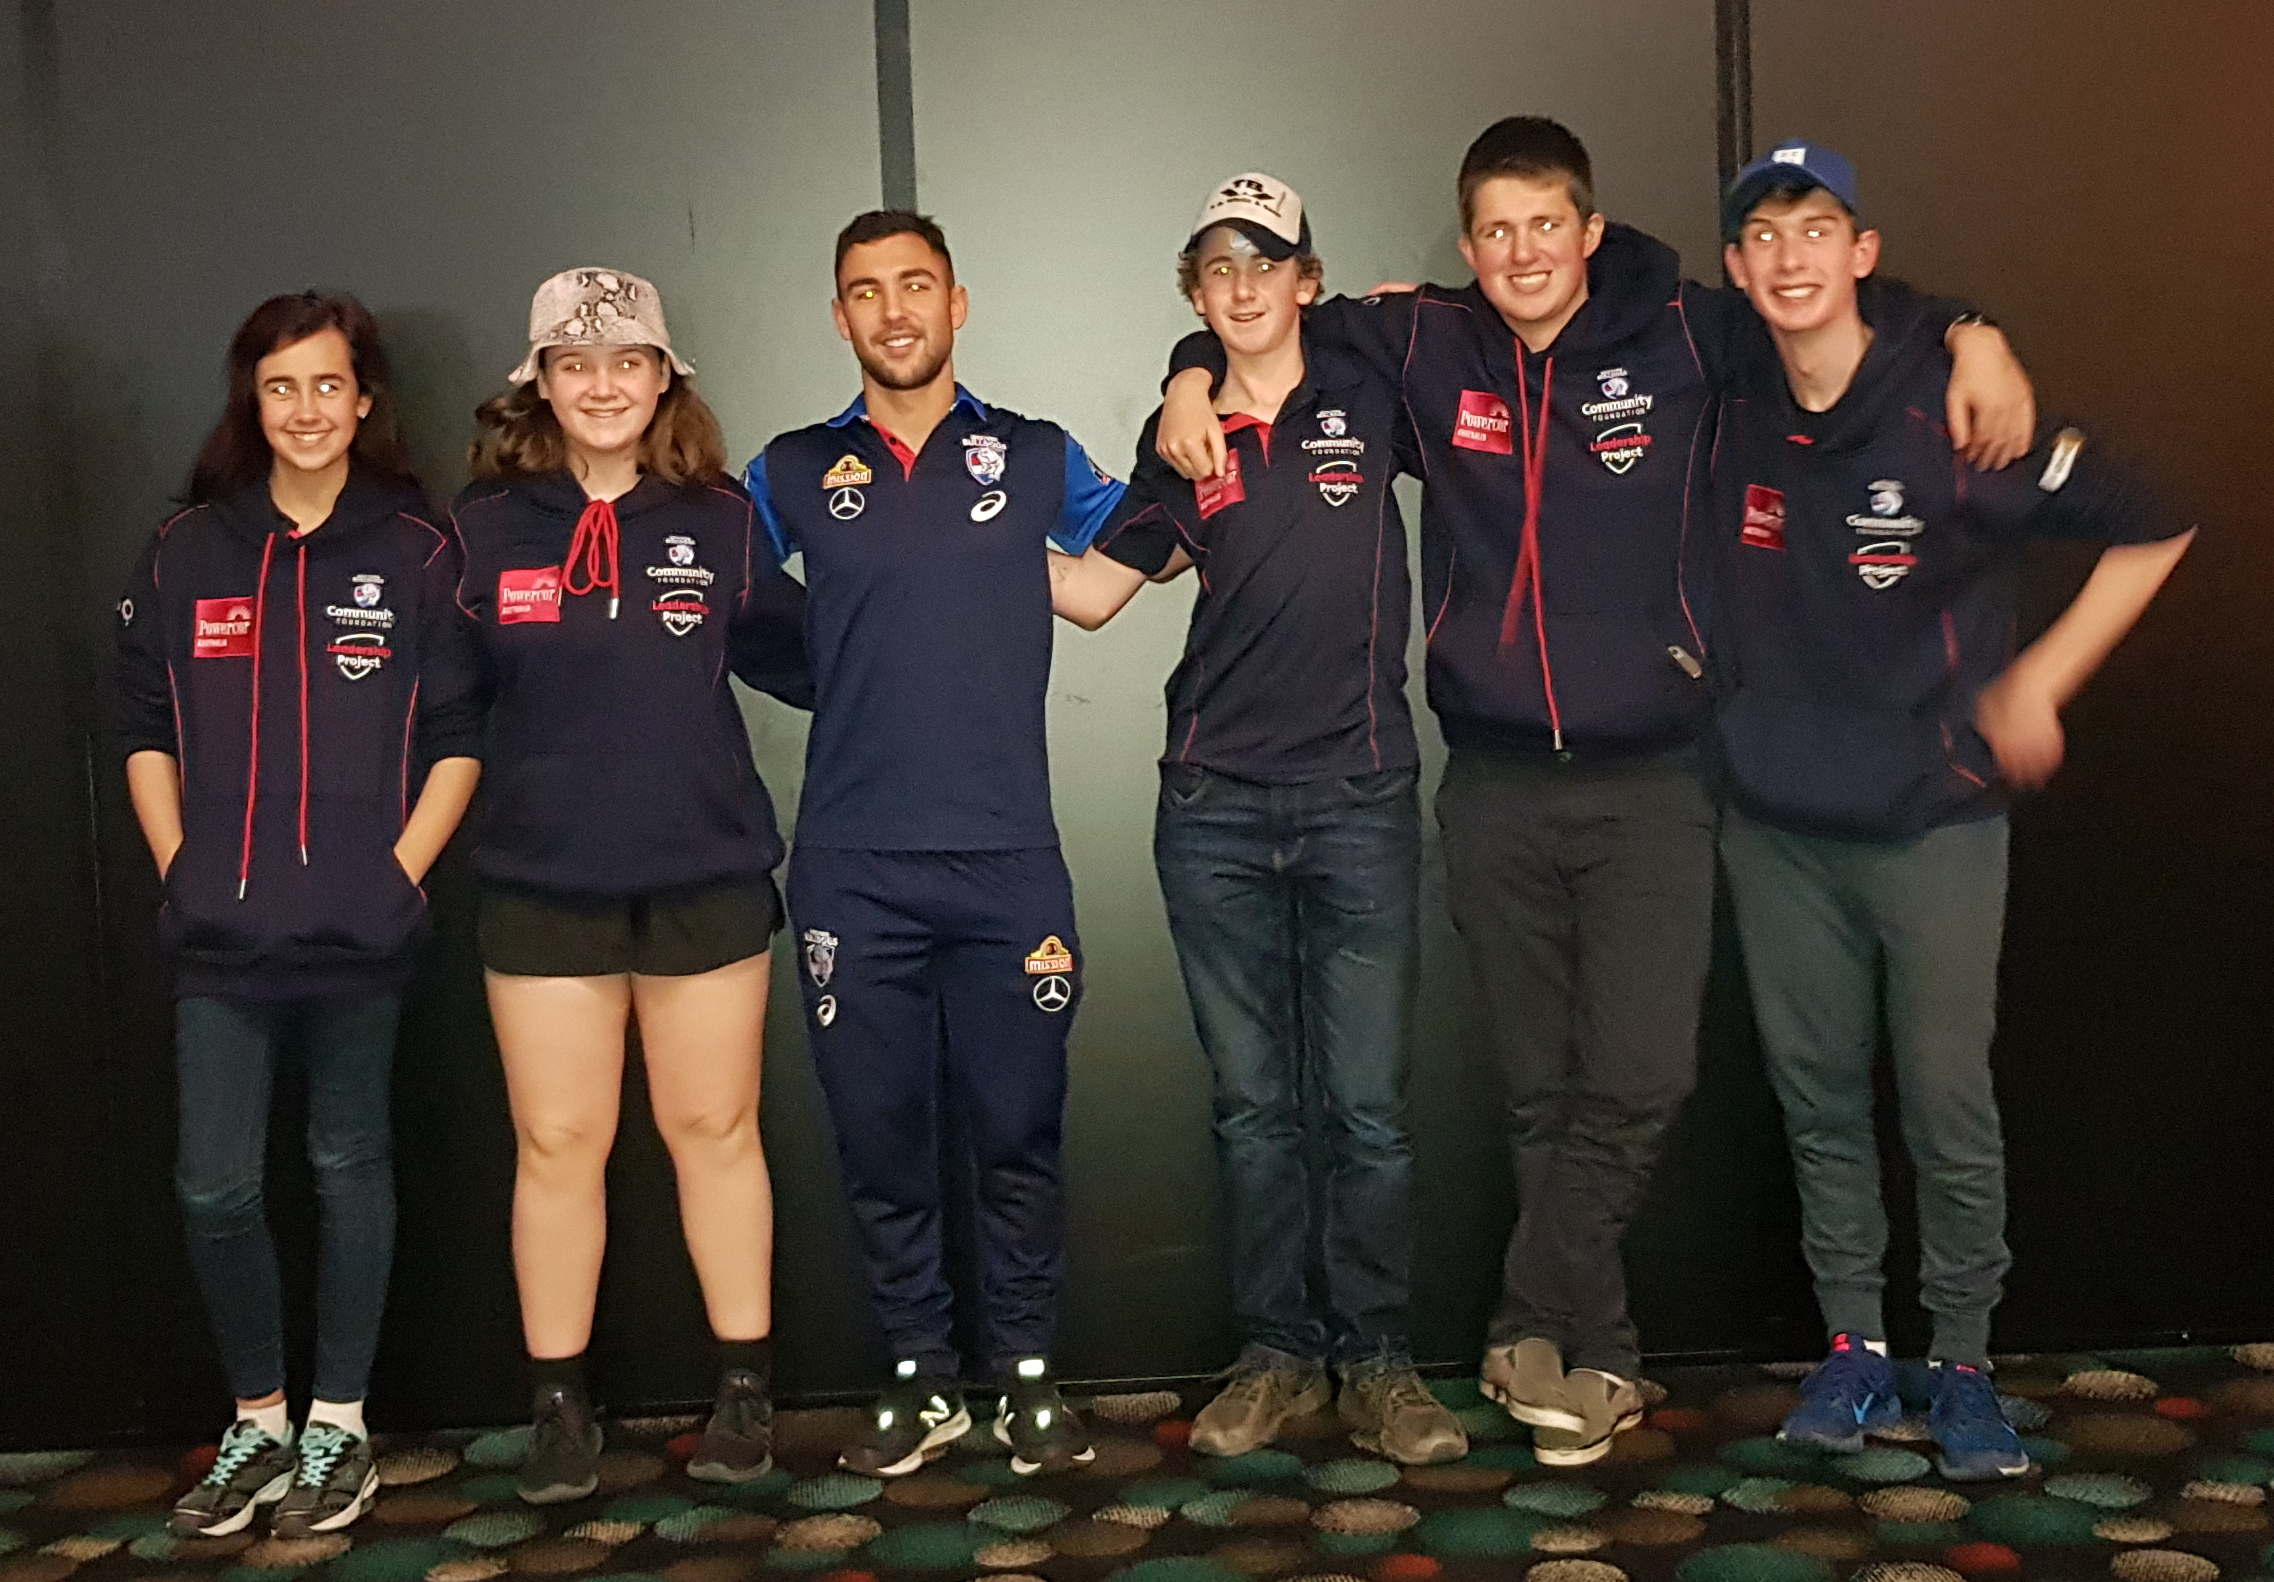 Western Bulldogs Leadership Project participants learn new skills